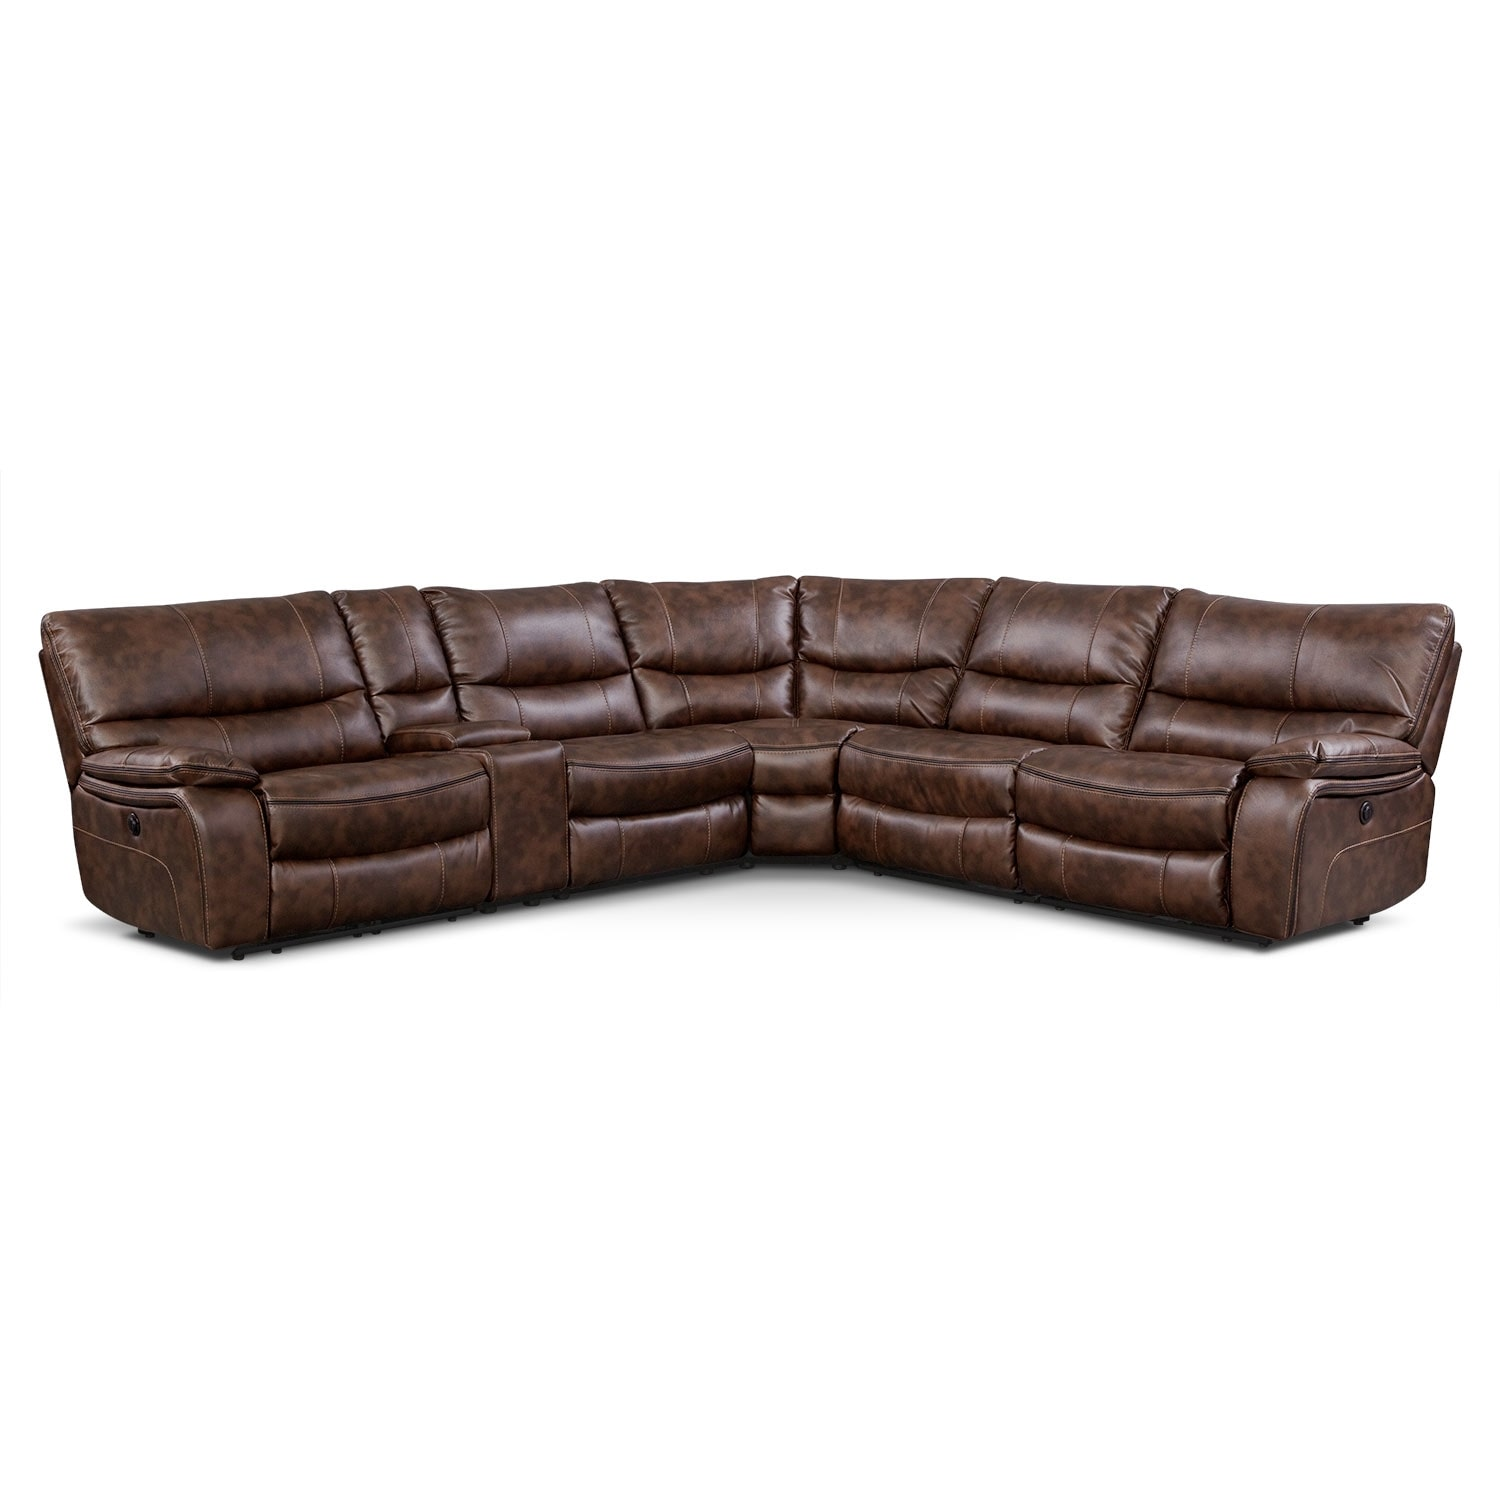 Orlando 6-Piece Power Reclining Sectional w/ 2 Stationary Chairs - Brown